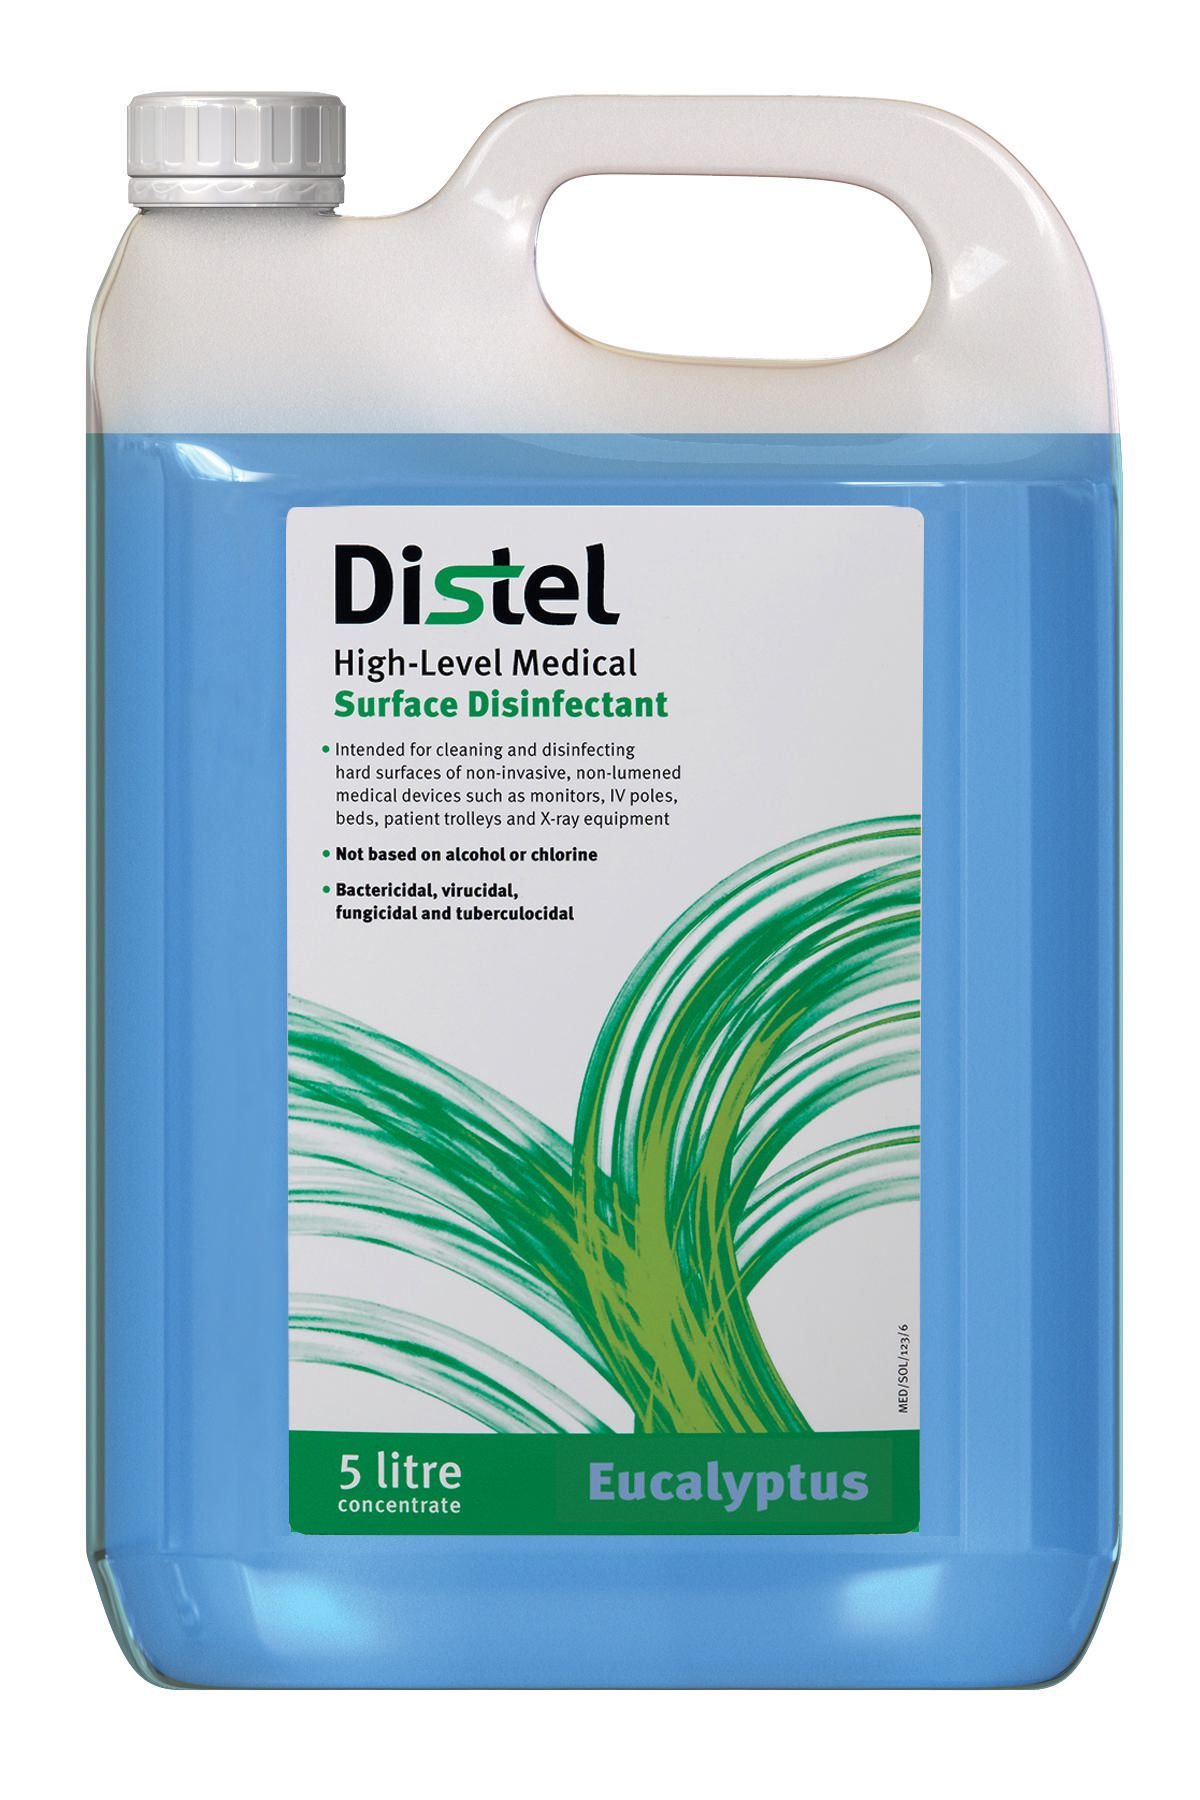 Image – Distel Disinfectant-Concentrate, 5 Litre Pump Container, Blue, Eucalyptus - key visual